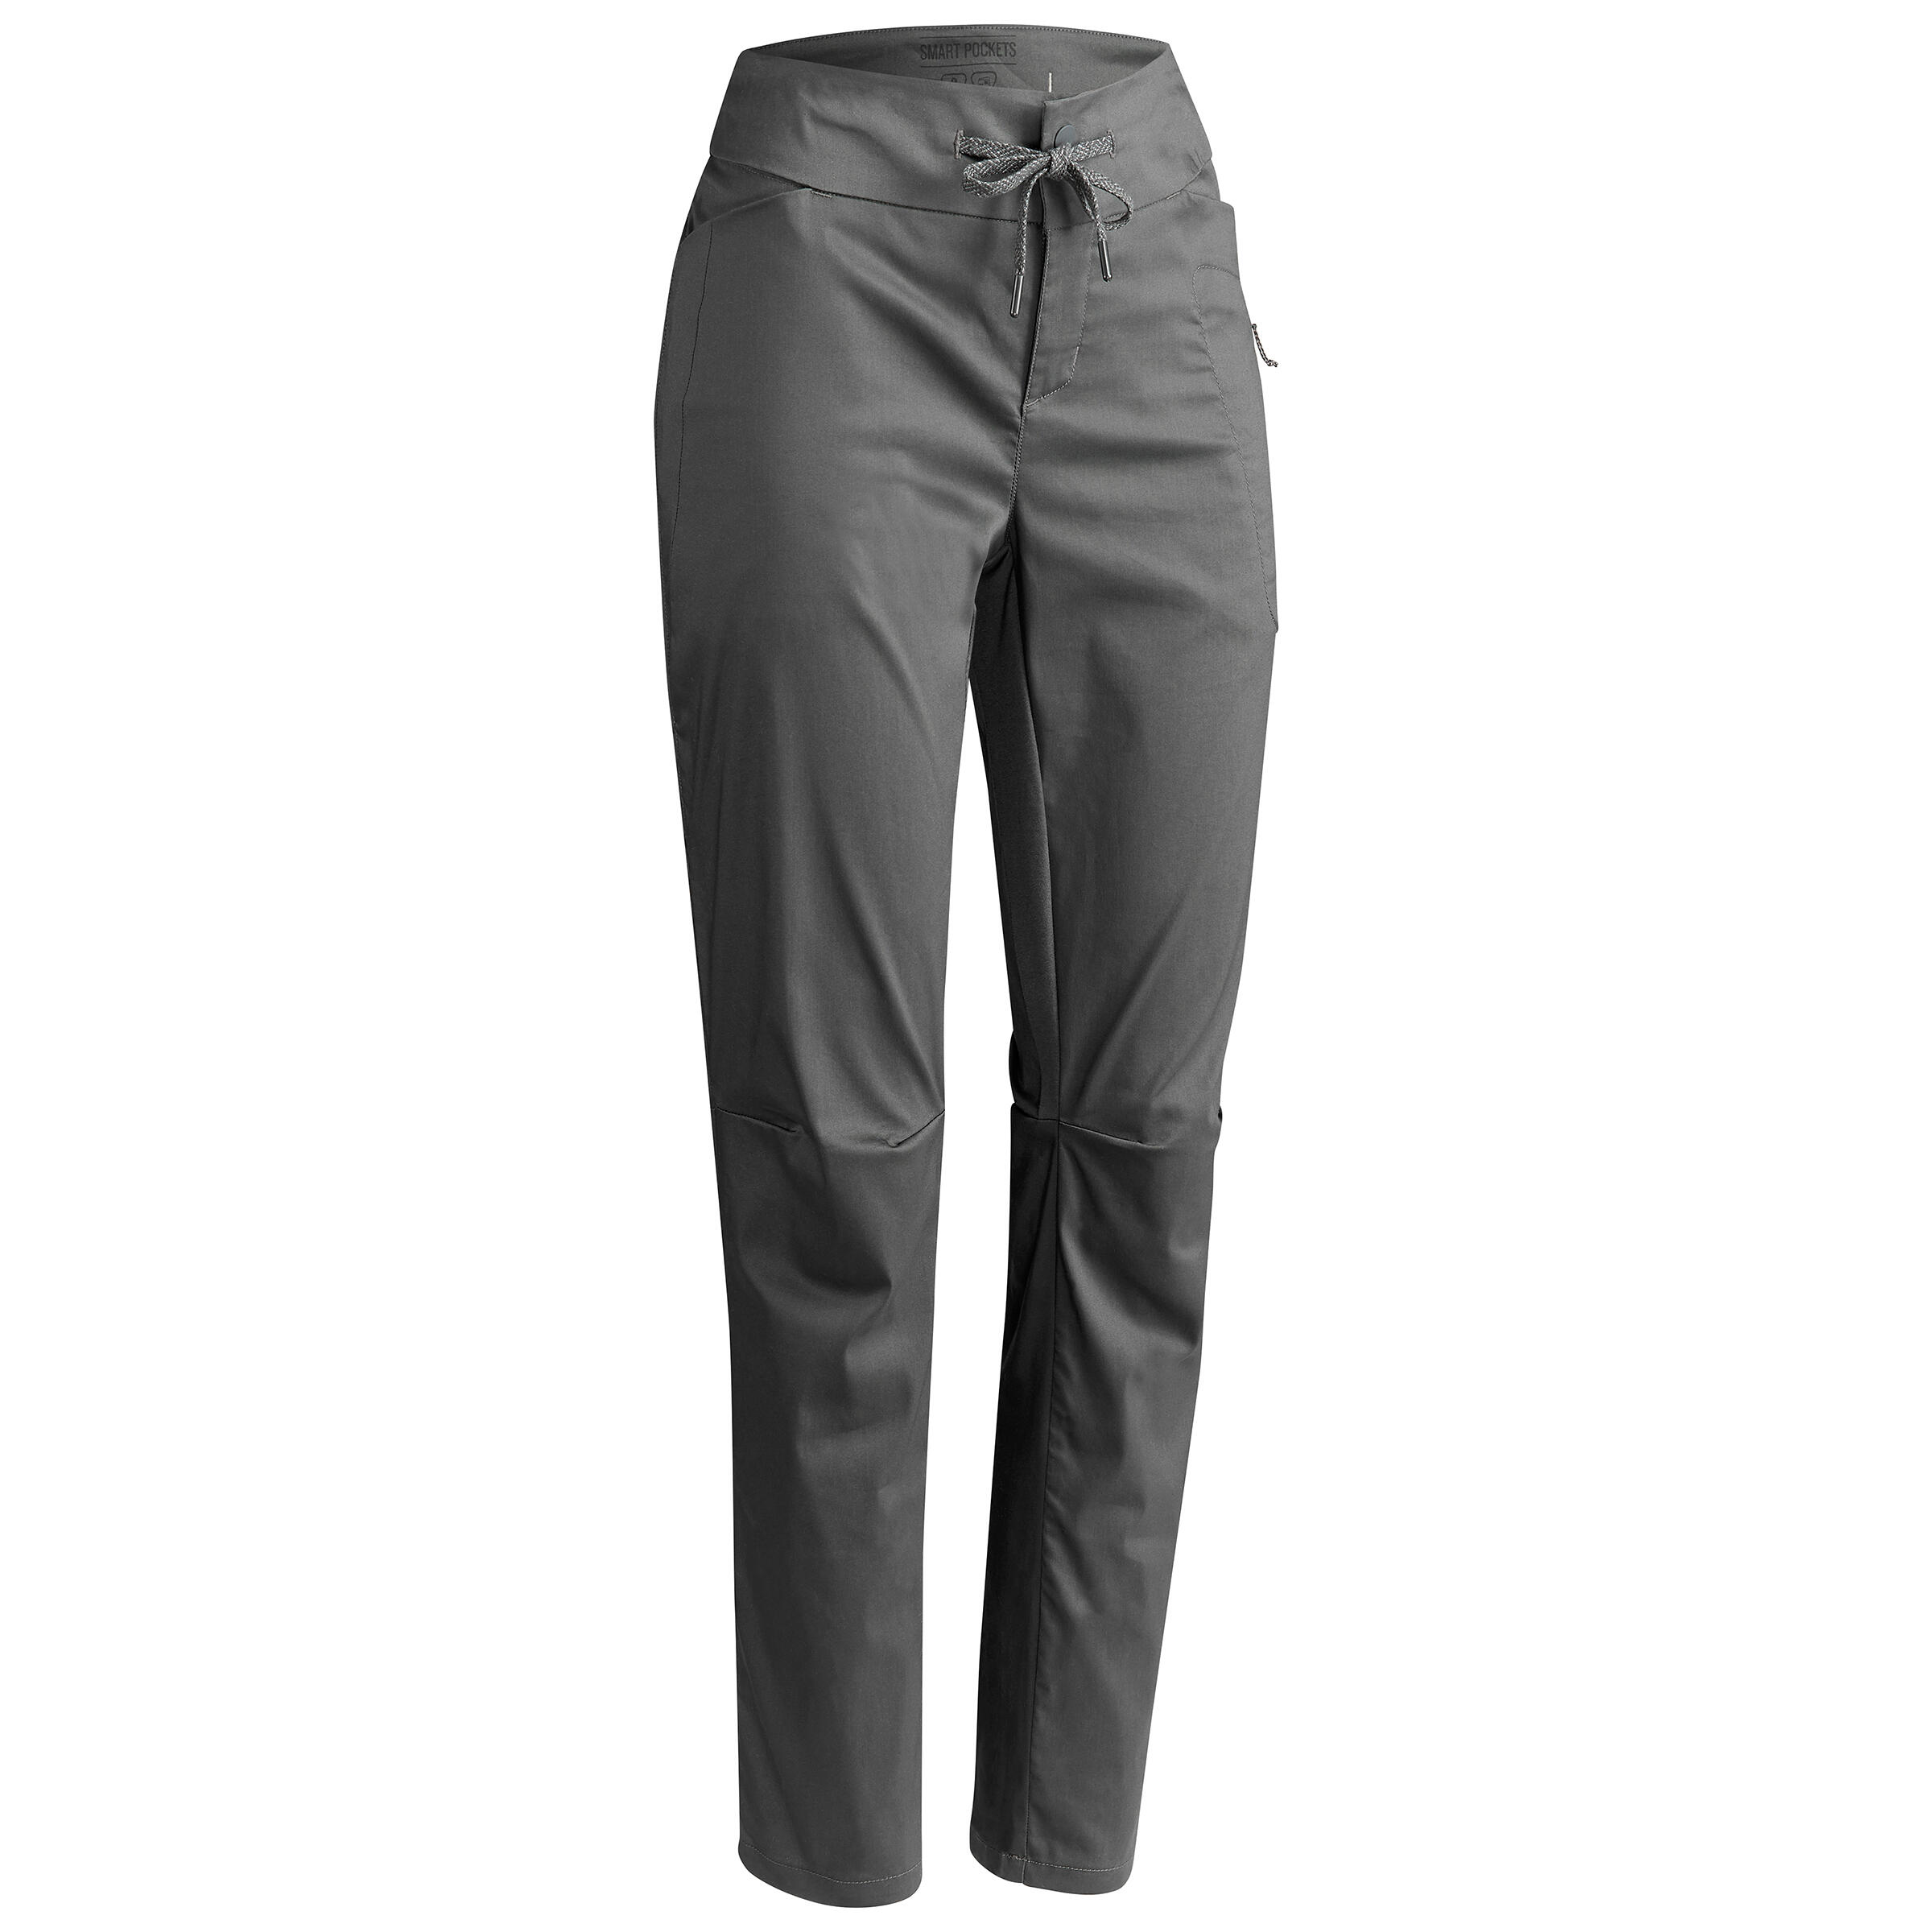 Pantalon regular NH500 Damă